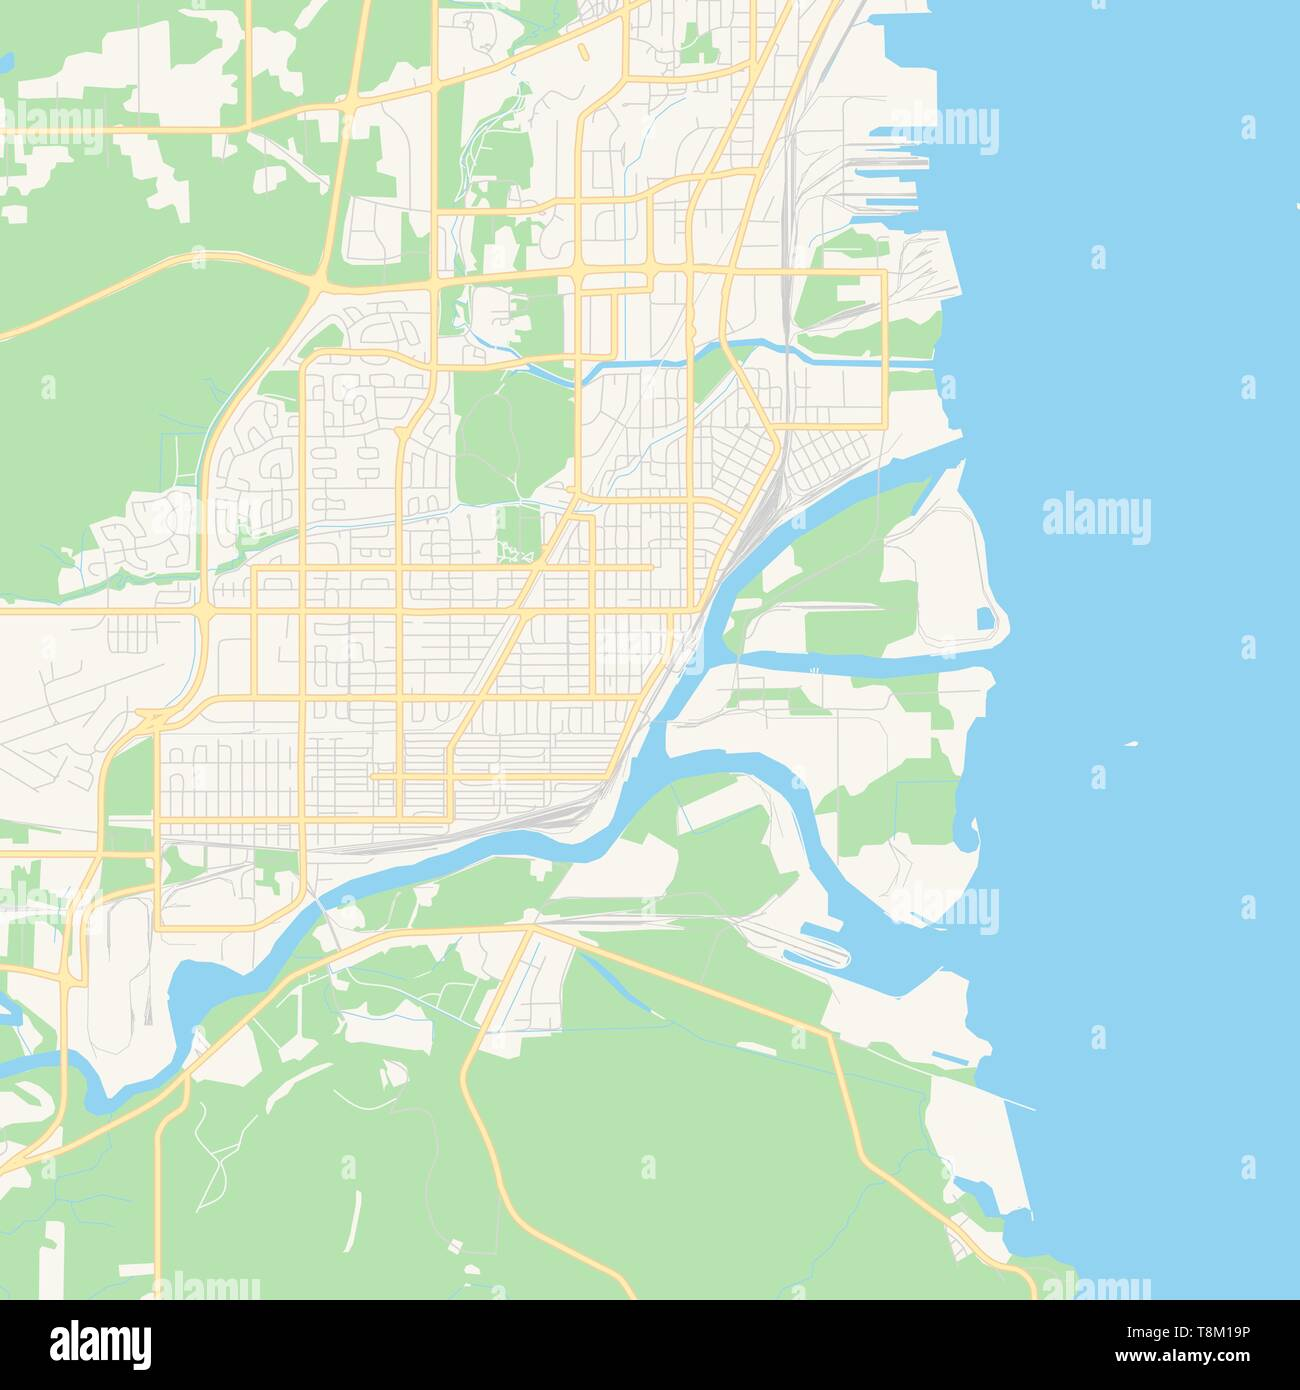 photo relating to Thunder Schedule Printable called Vacant vector map of Thunder Bay, Ontario, Canada, printable